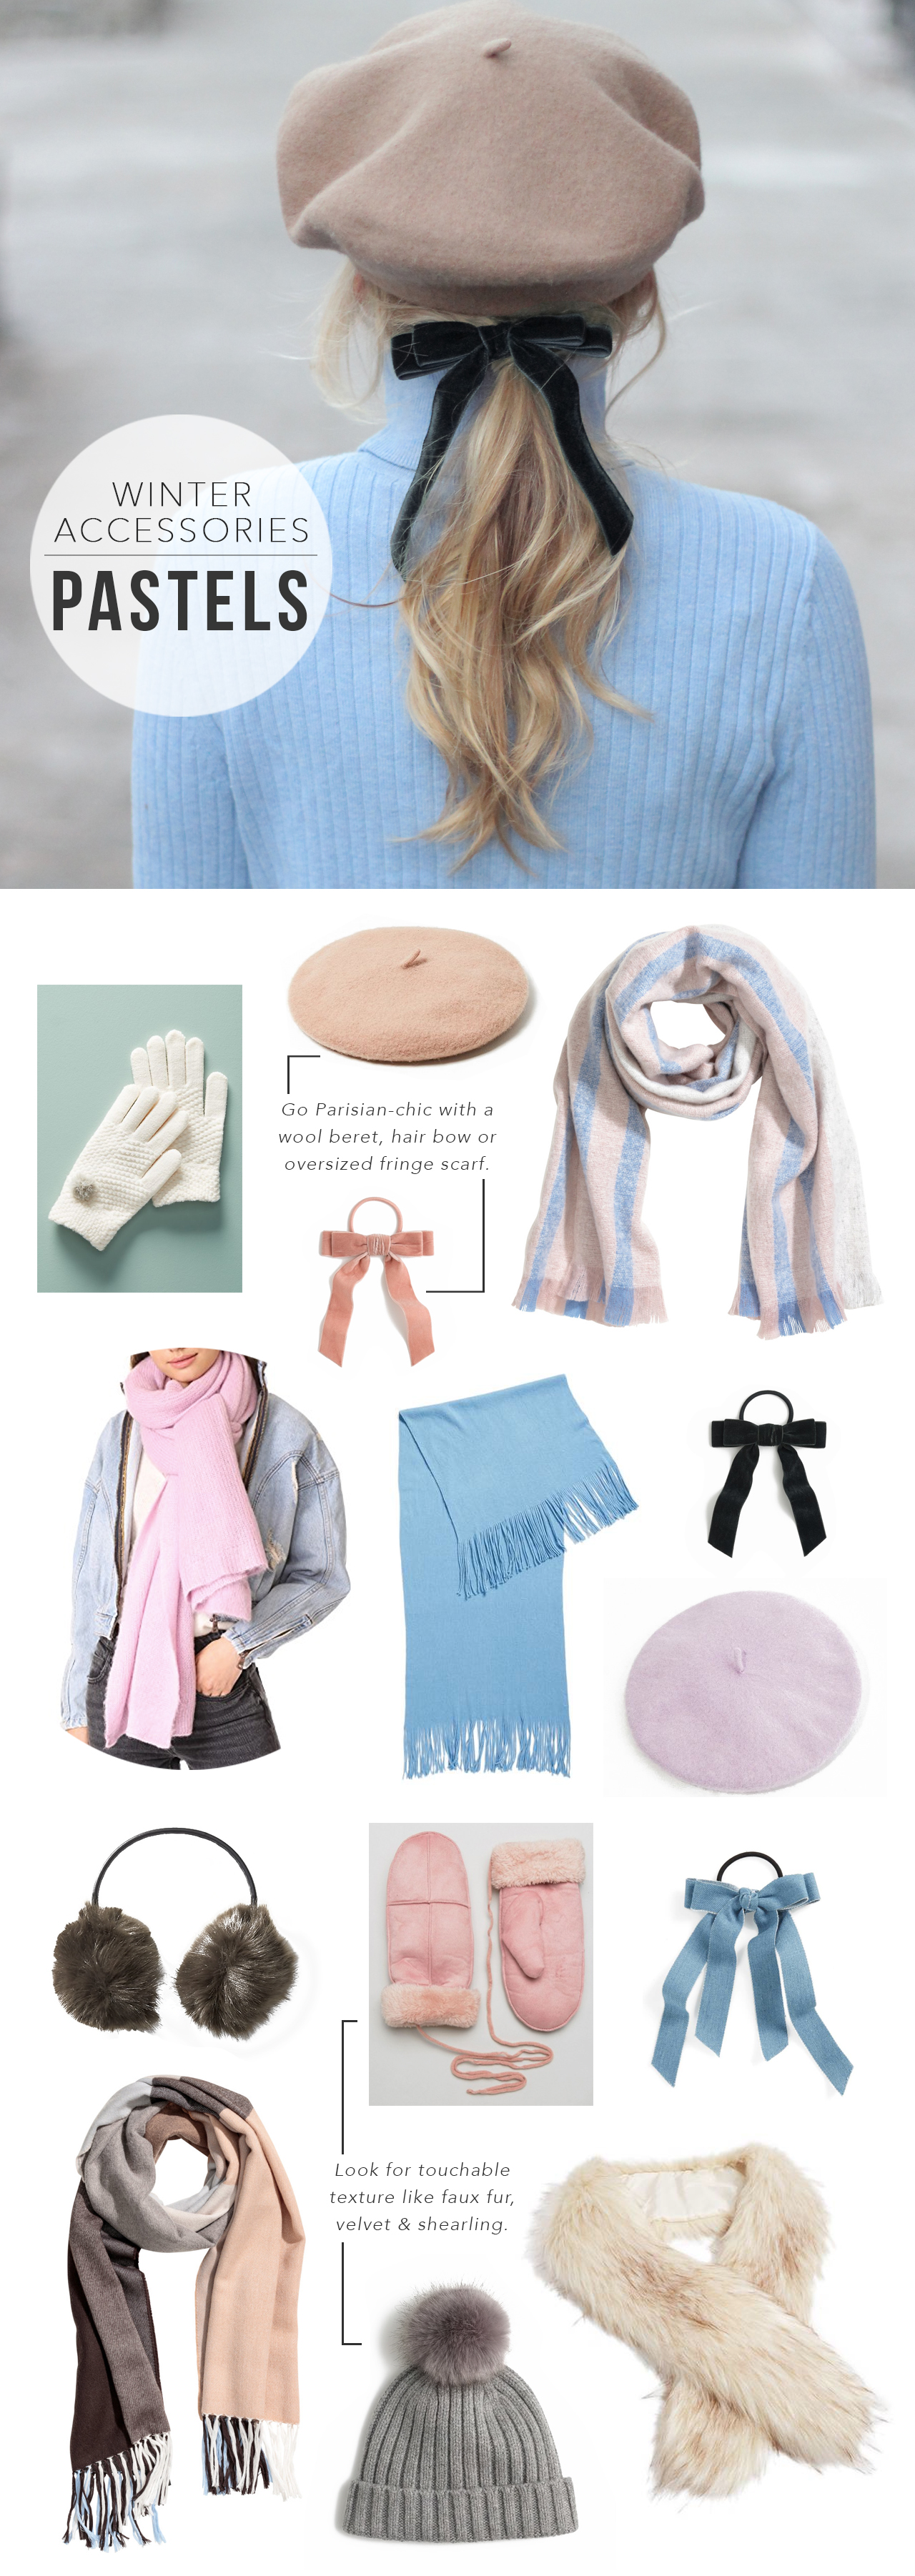 The Steele Maiden: Pastel Winter Accessories Under $50